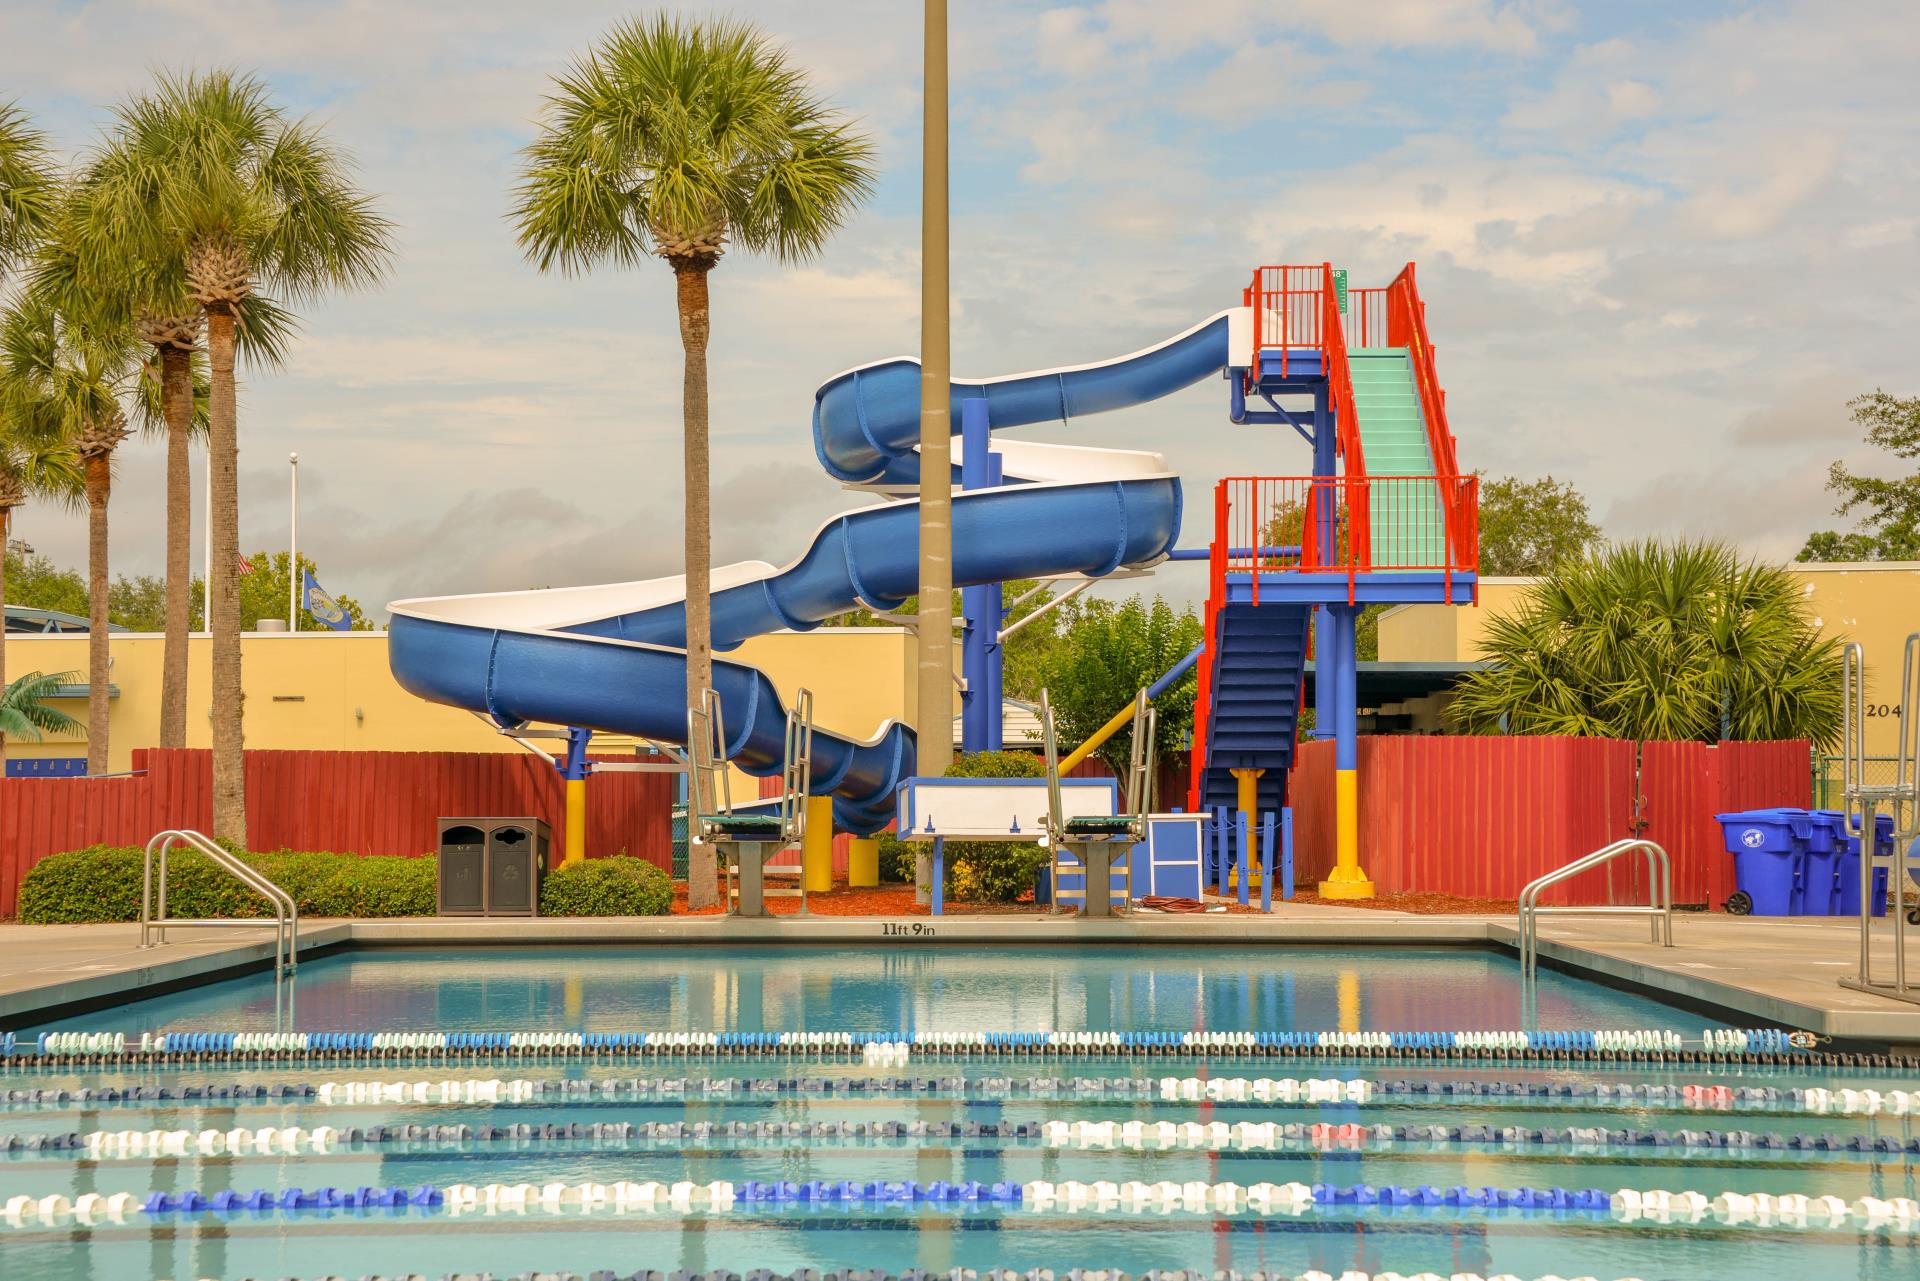 Bob Makinson Aquatic Center City of Kissimmee water slide